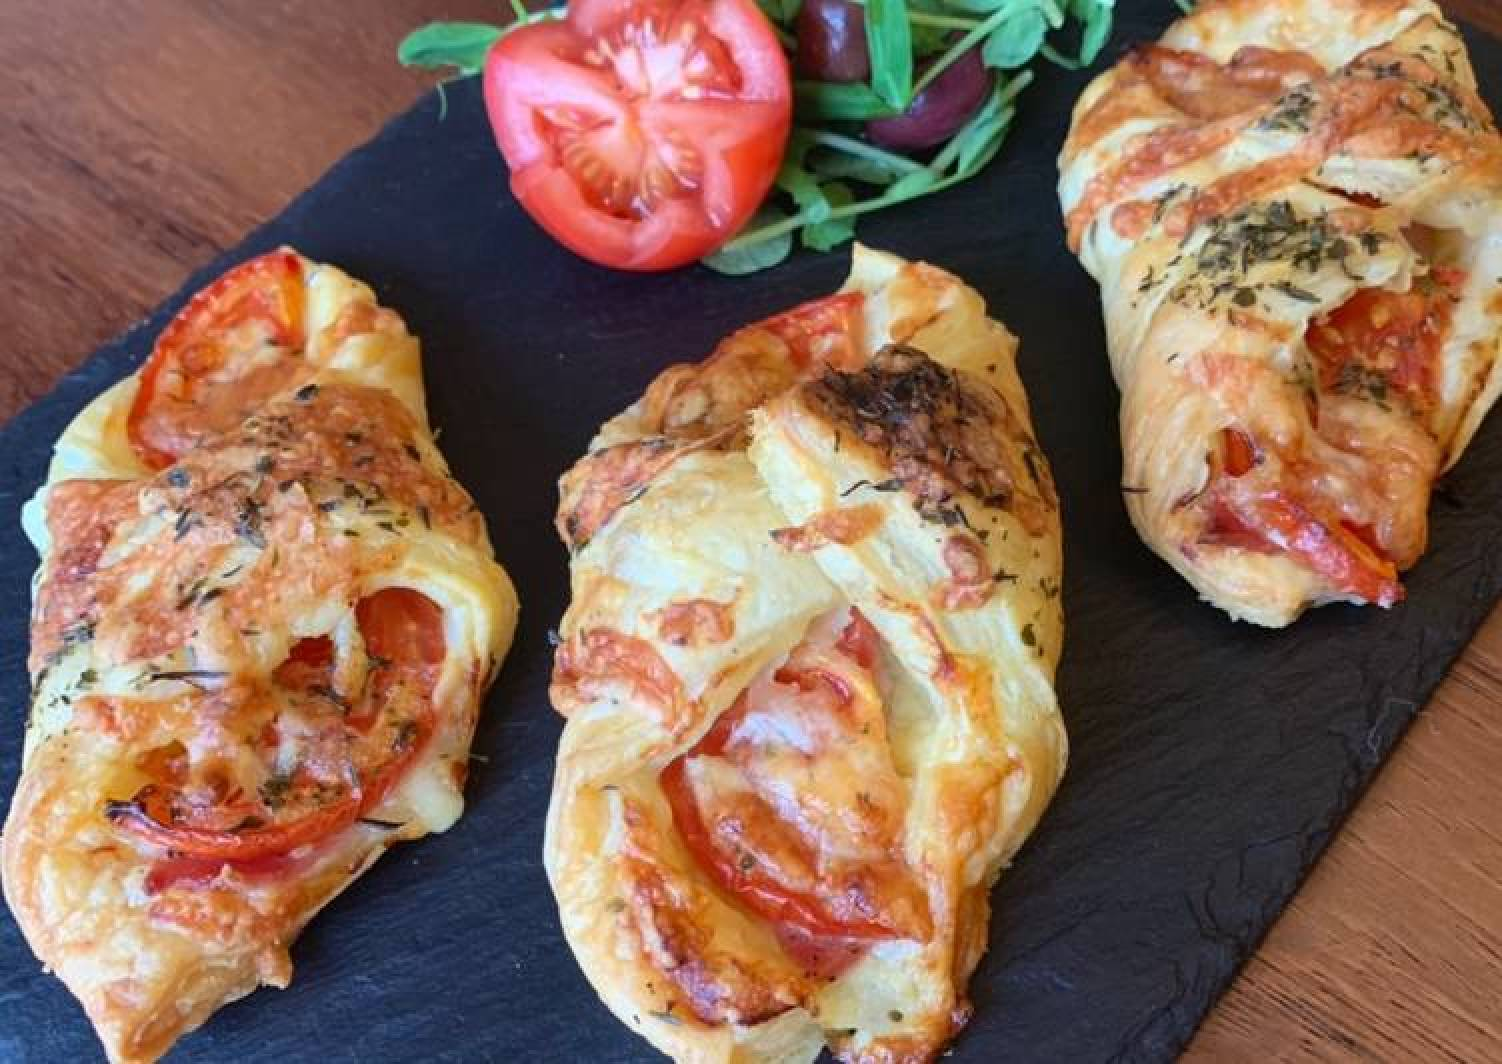 Bacon puff pastry (Conwy Puffs)